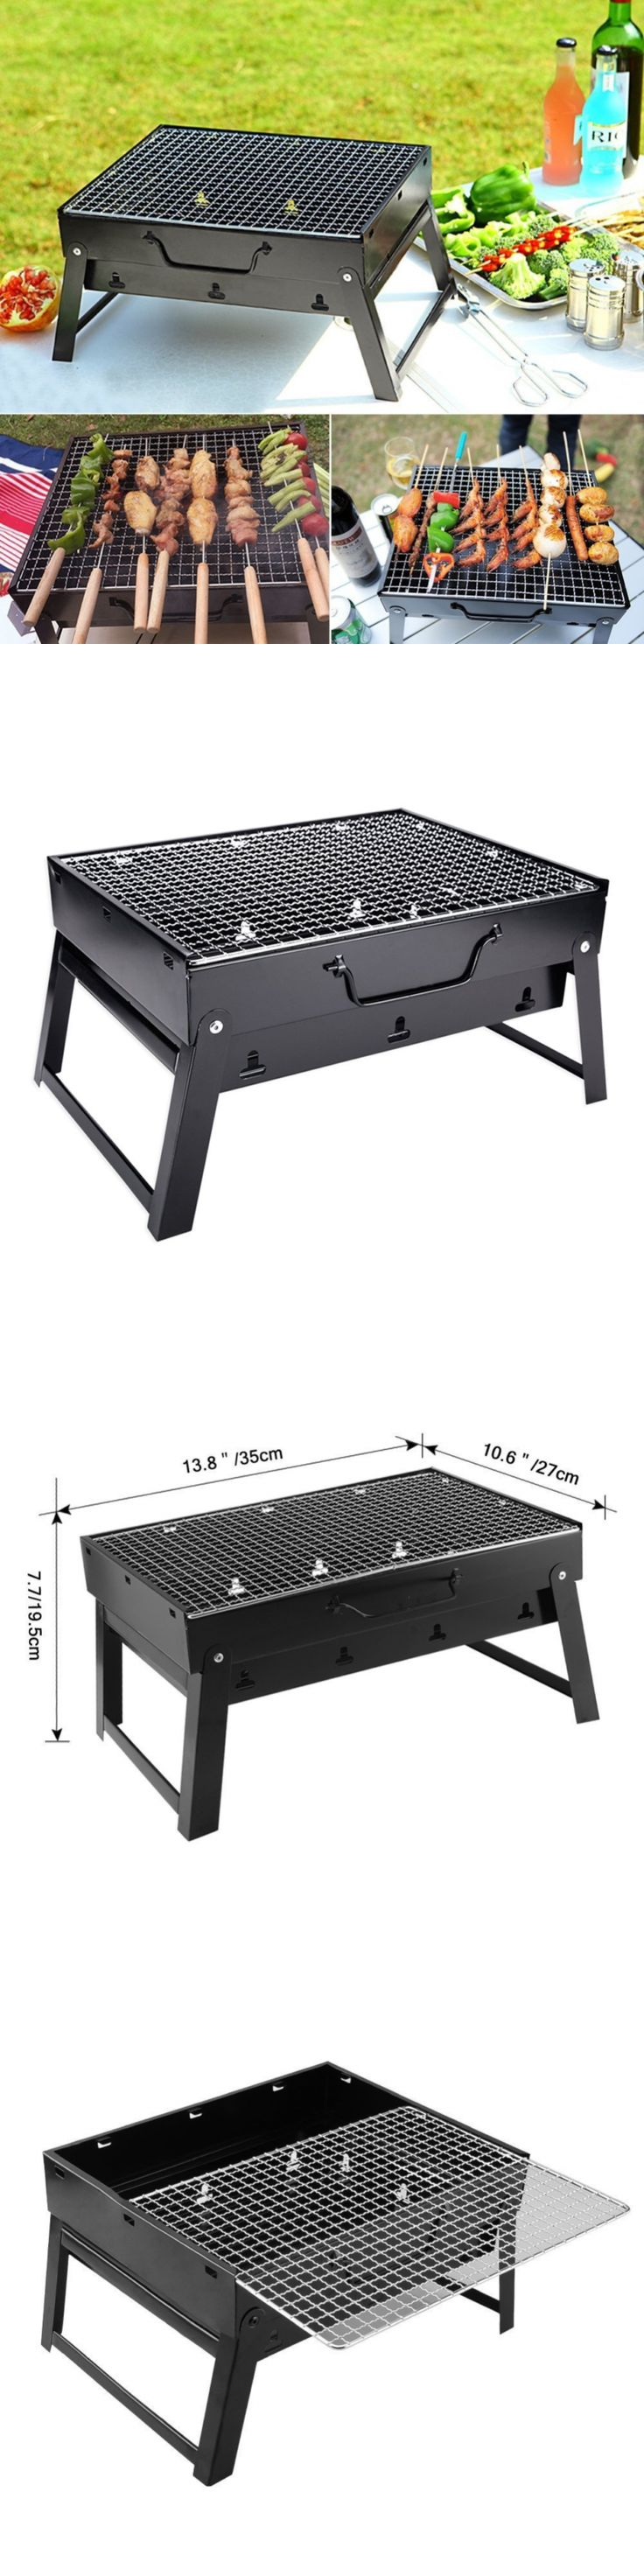 Barbecues Grills and Smokers 151621: Charcoal Bbq Grill Folding Portable Stainless Steel Barbecue Grill For Outdoor C -> BUY IT NOW ONLY: $36.68 on eBay!